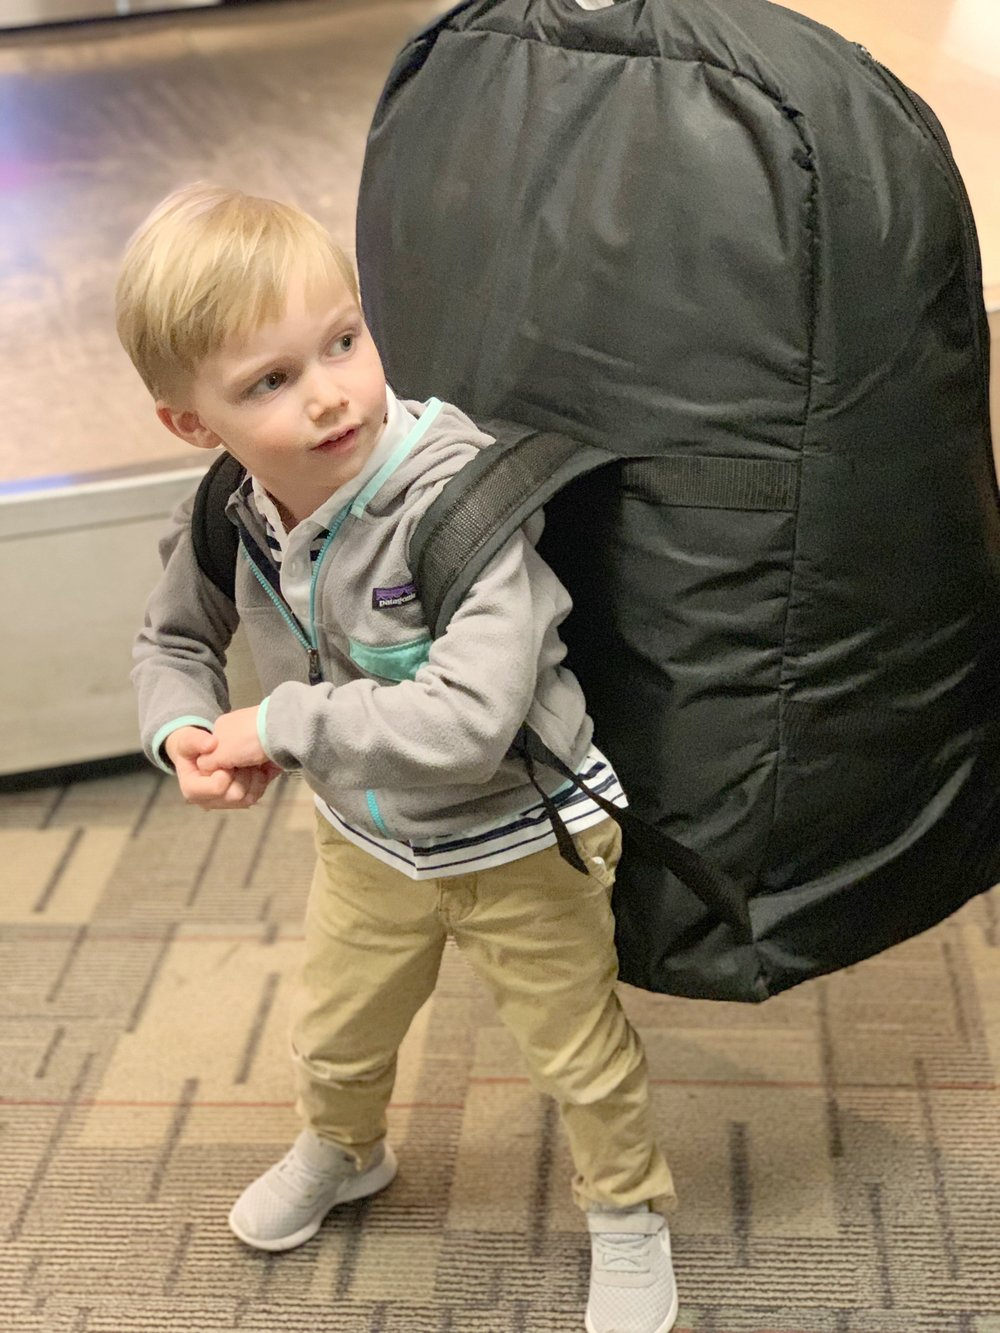 Little boy pretending to carry a car seat travel backpack